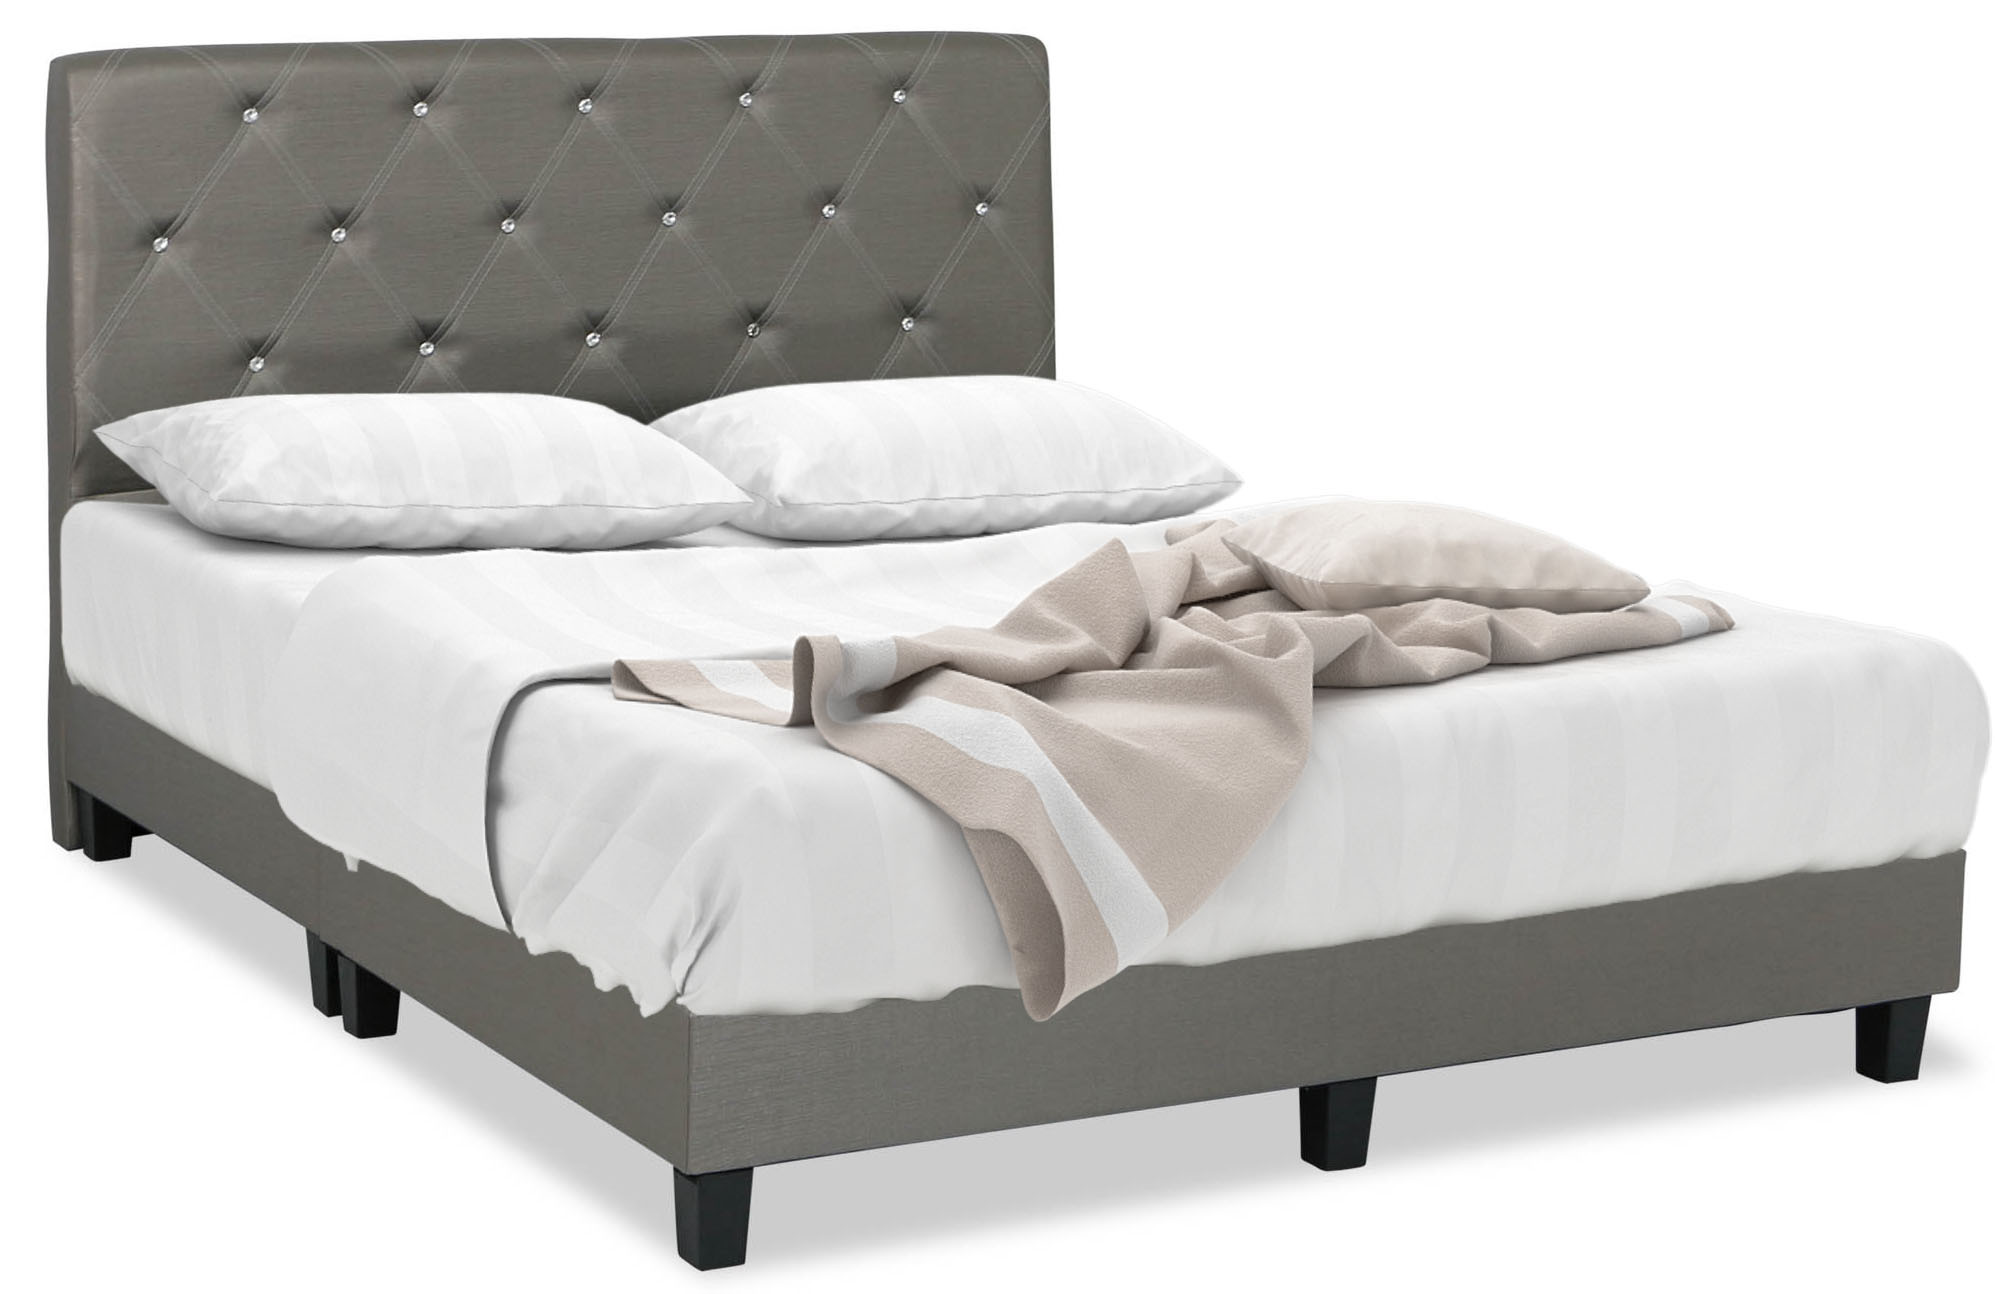 Broyles Faux Leather Bed Frame in Queen Size | Furniture & Home ...